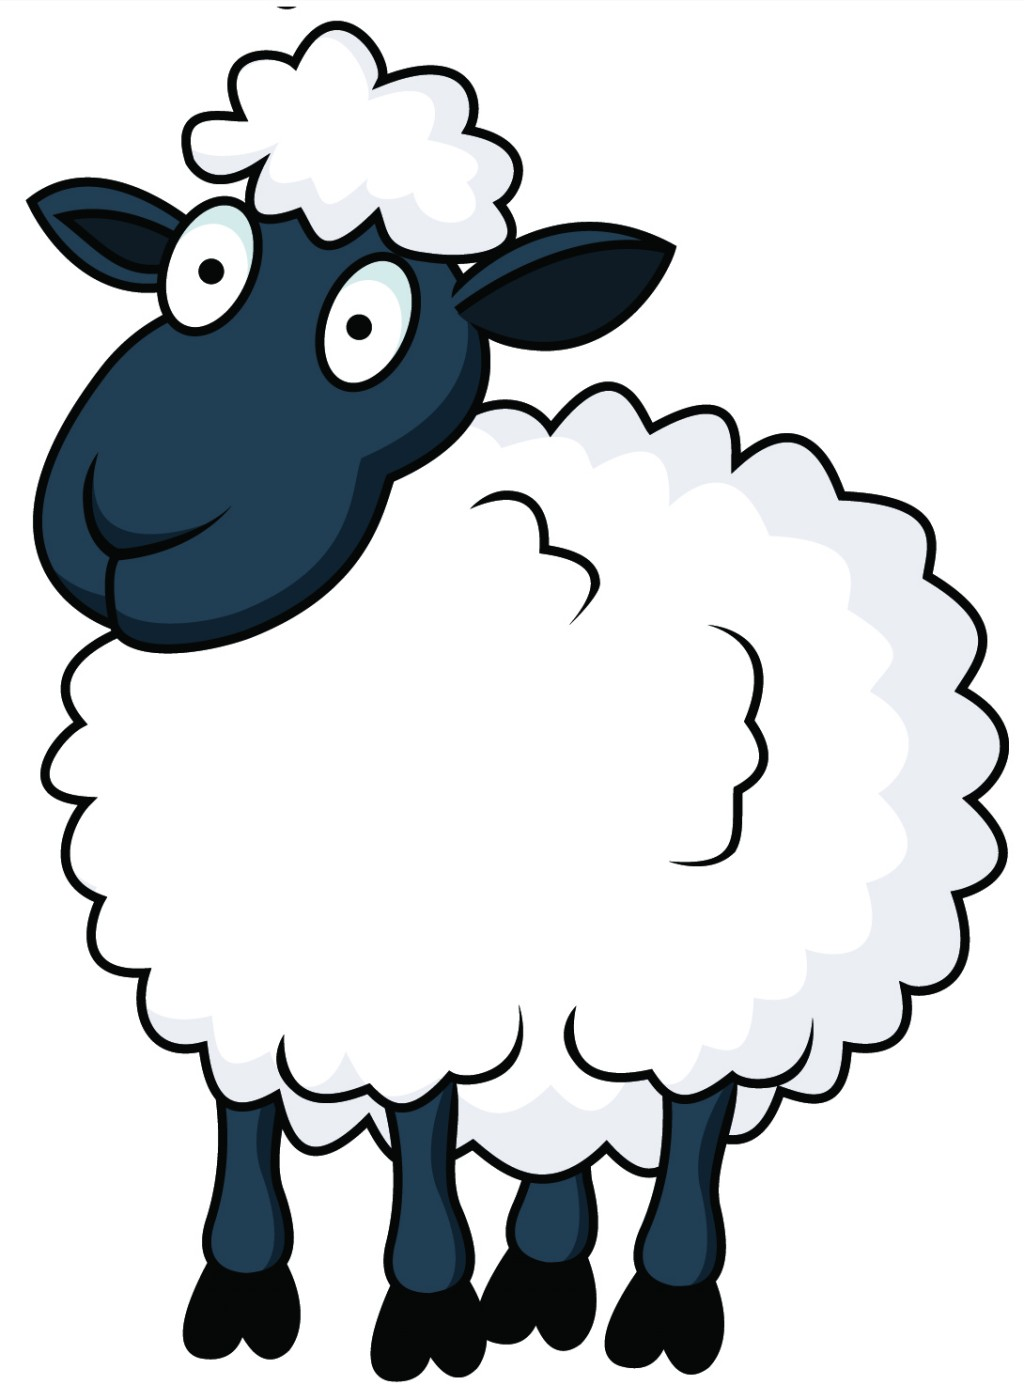 Funny Eid ul-Adha Sheep in Cartoon Pictures | Amazing Photos